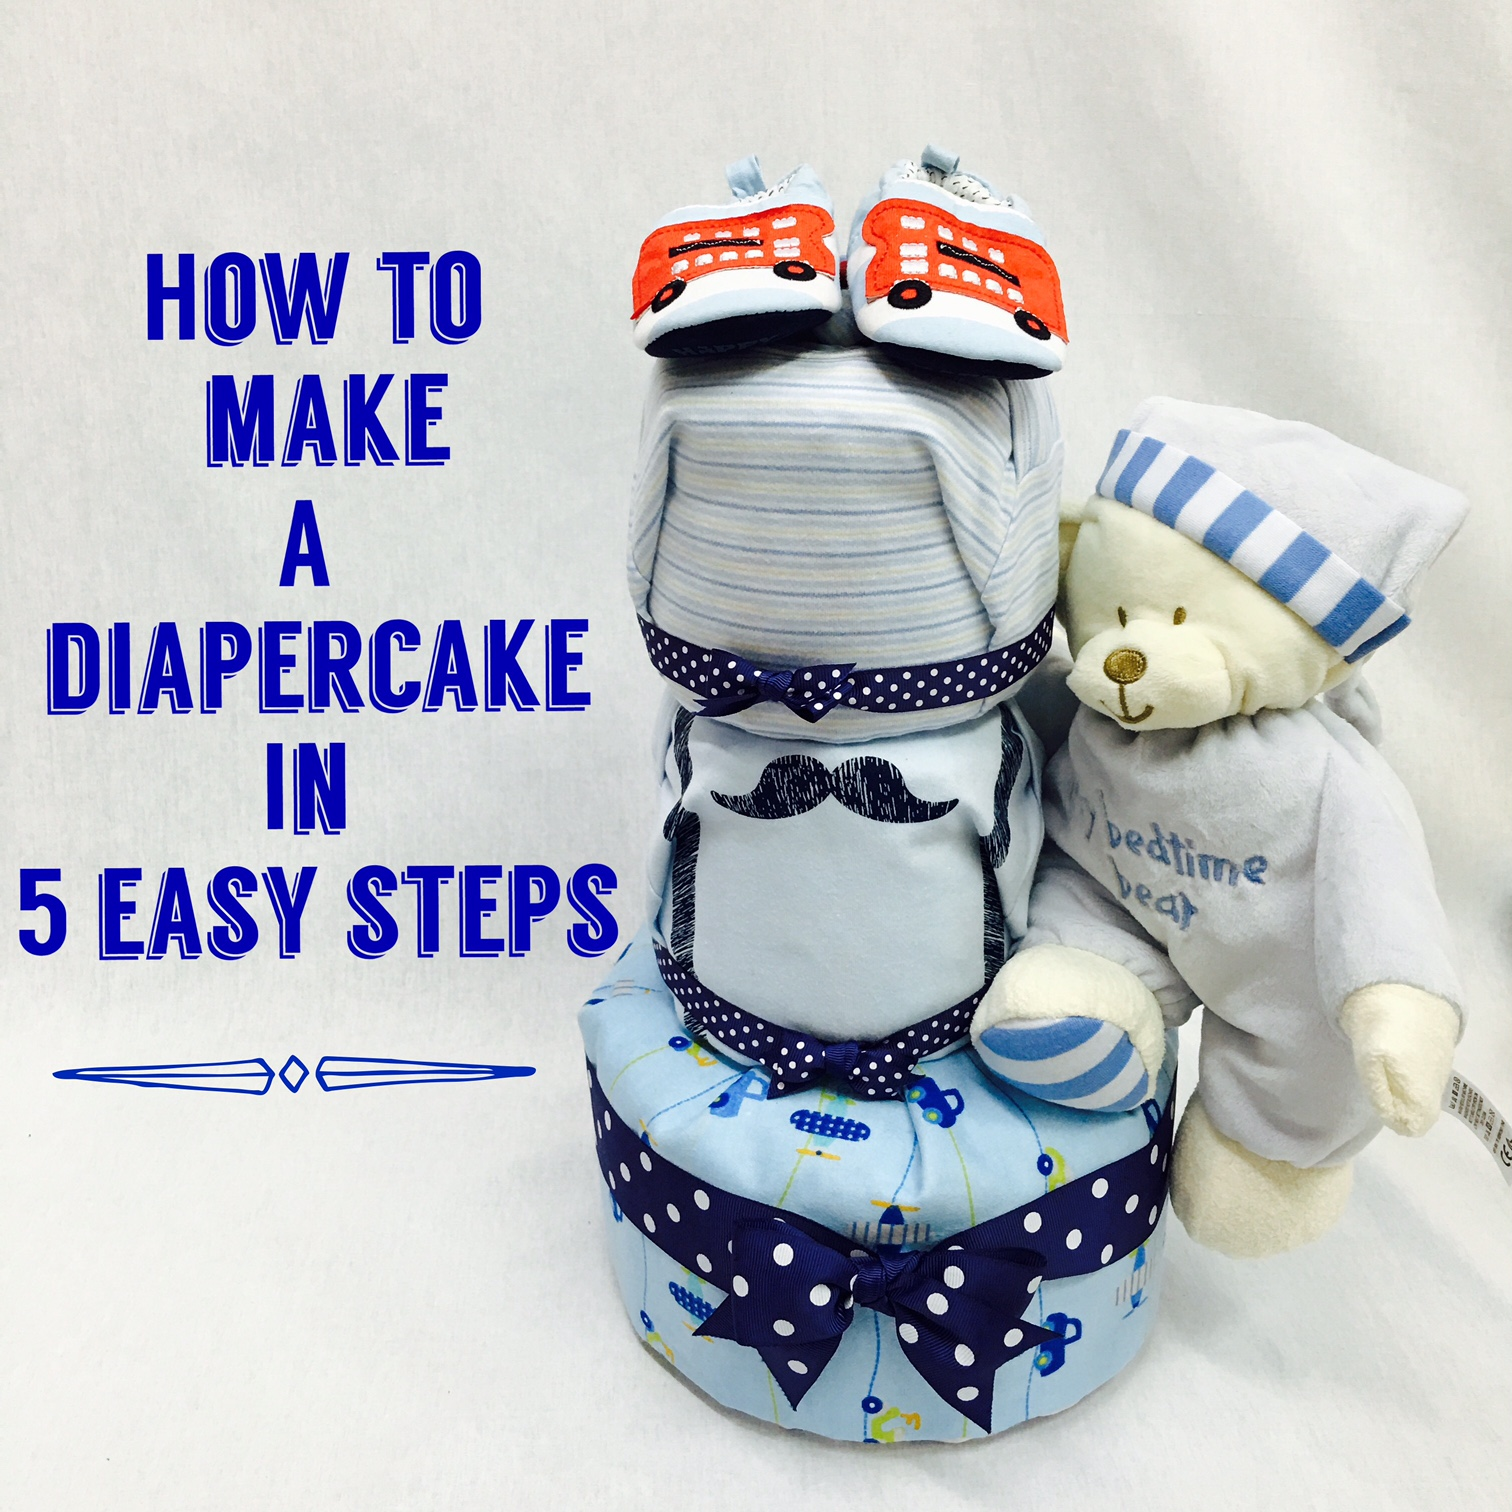 How to make a diaper cake in 5 steps